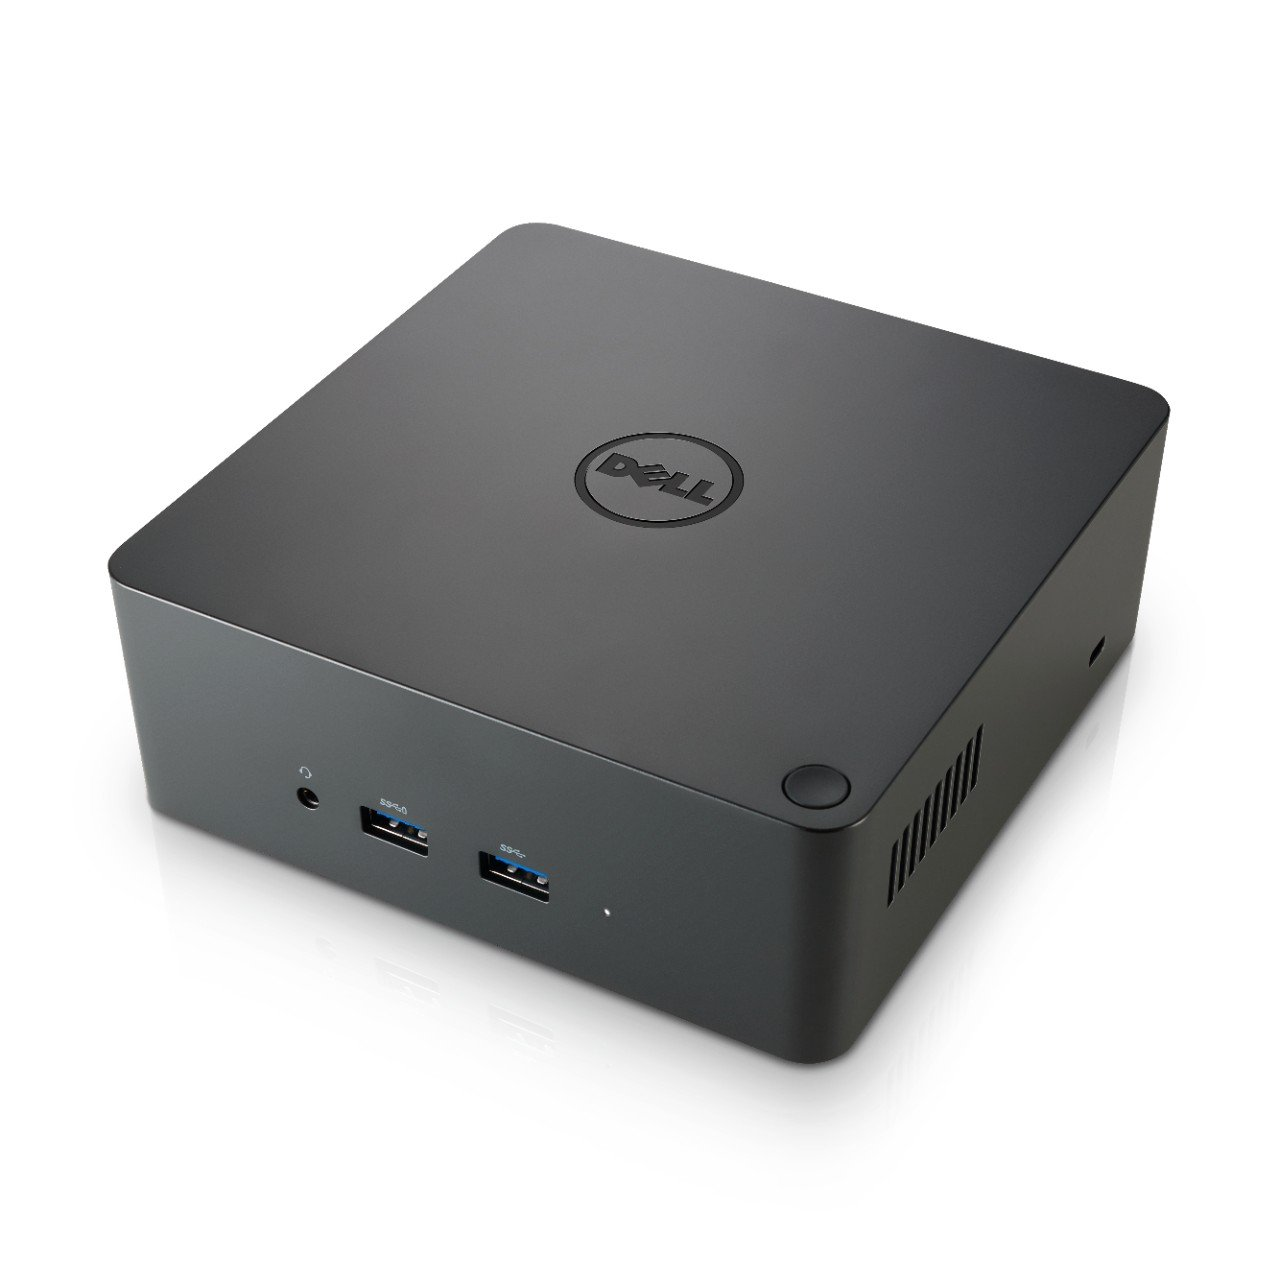 Dell Thunderbolt 3 Dock - TB16 180W Adapter